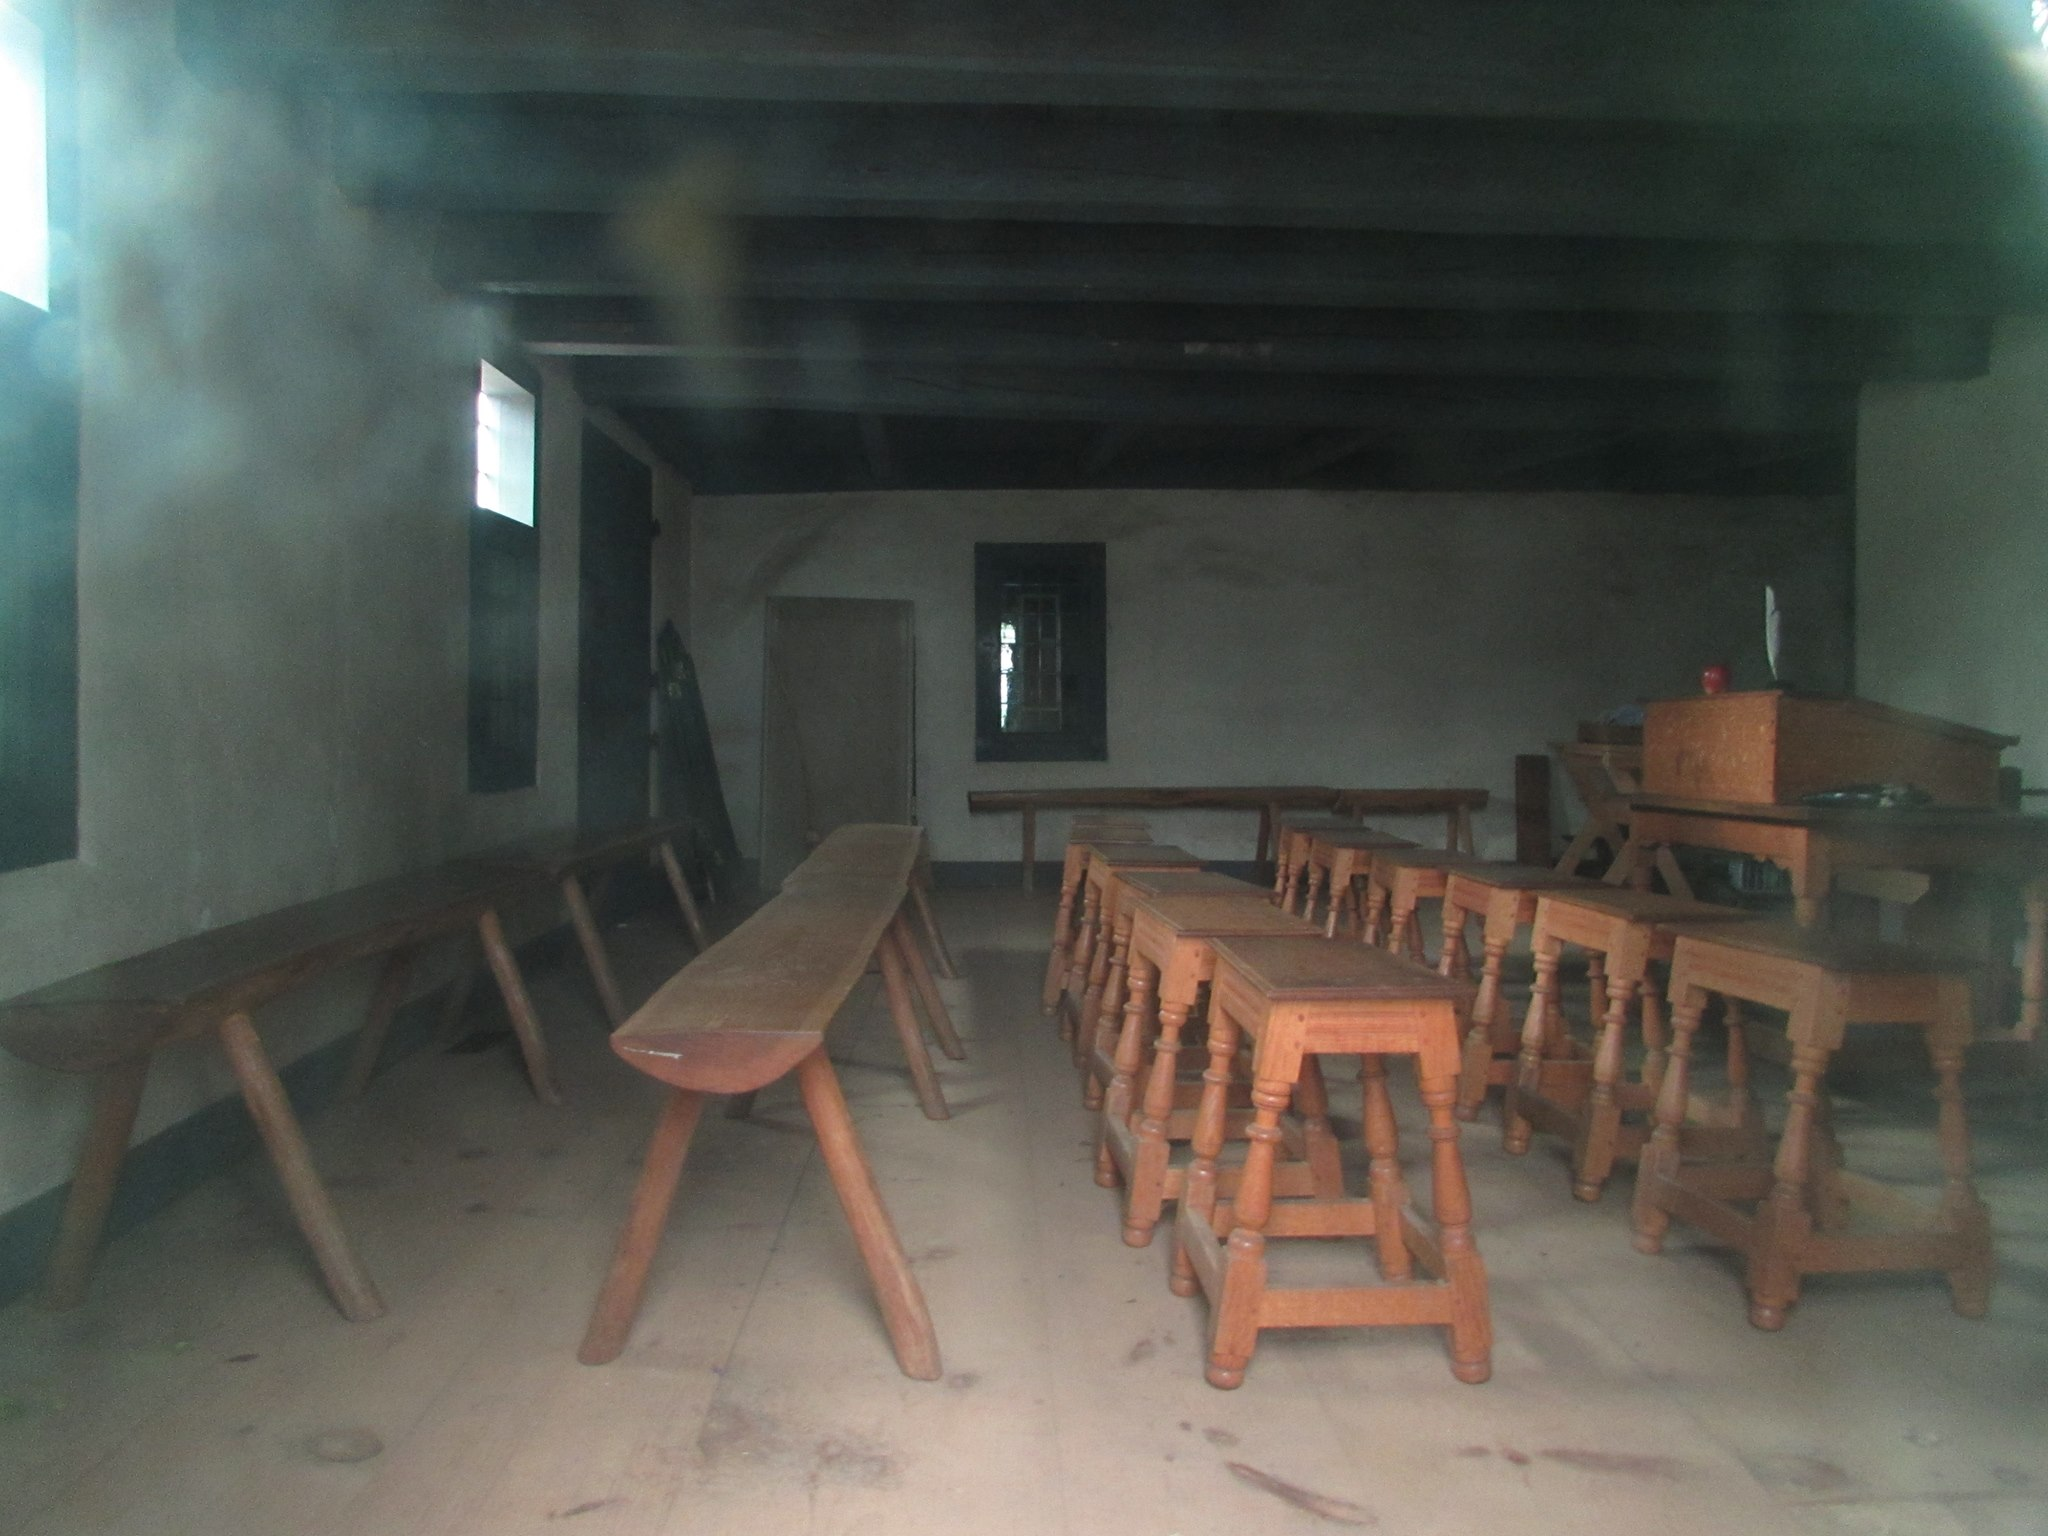 The building is used as a historic site and made to resemble its colonial appearance as a school and meeting house.